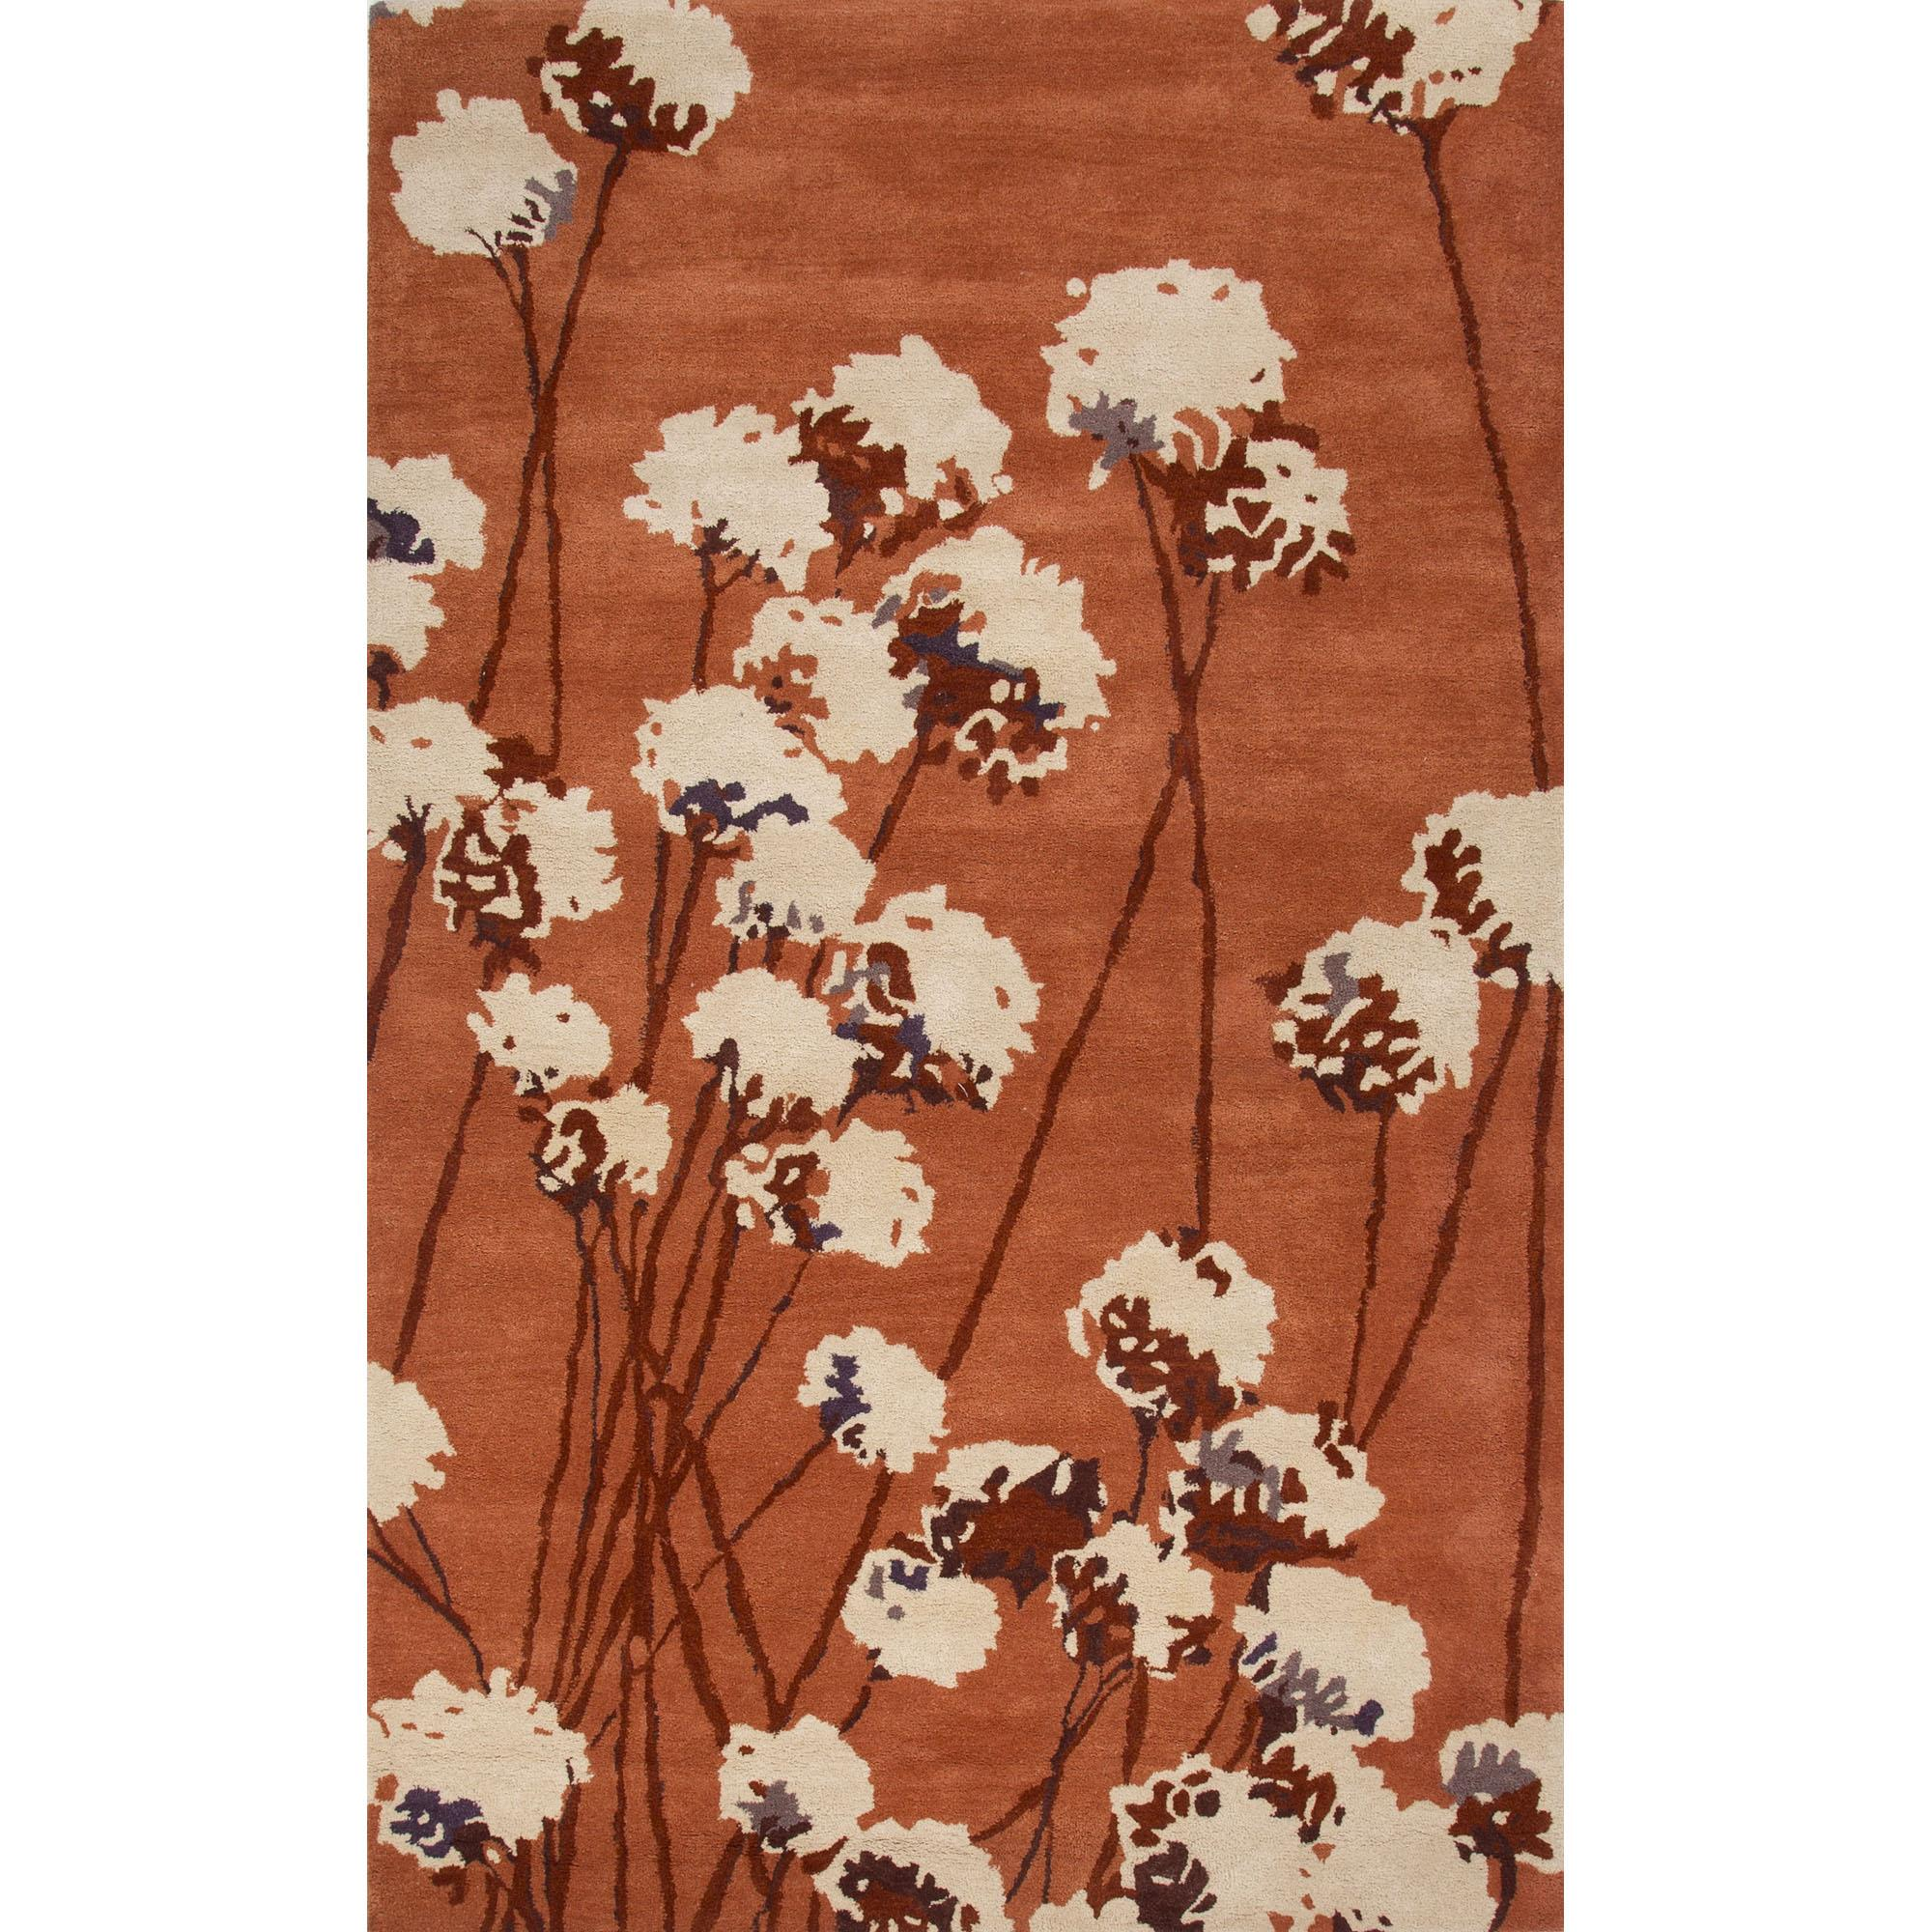 JAIPUR Rugs En Casa By Luli Sanchez Tufted 5 x 8 Rug - Item Number: RUG116029